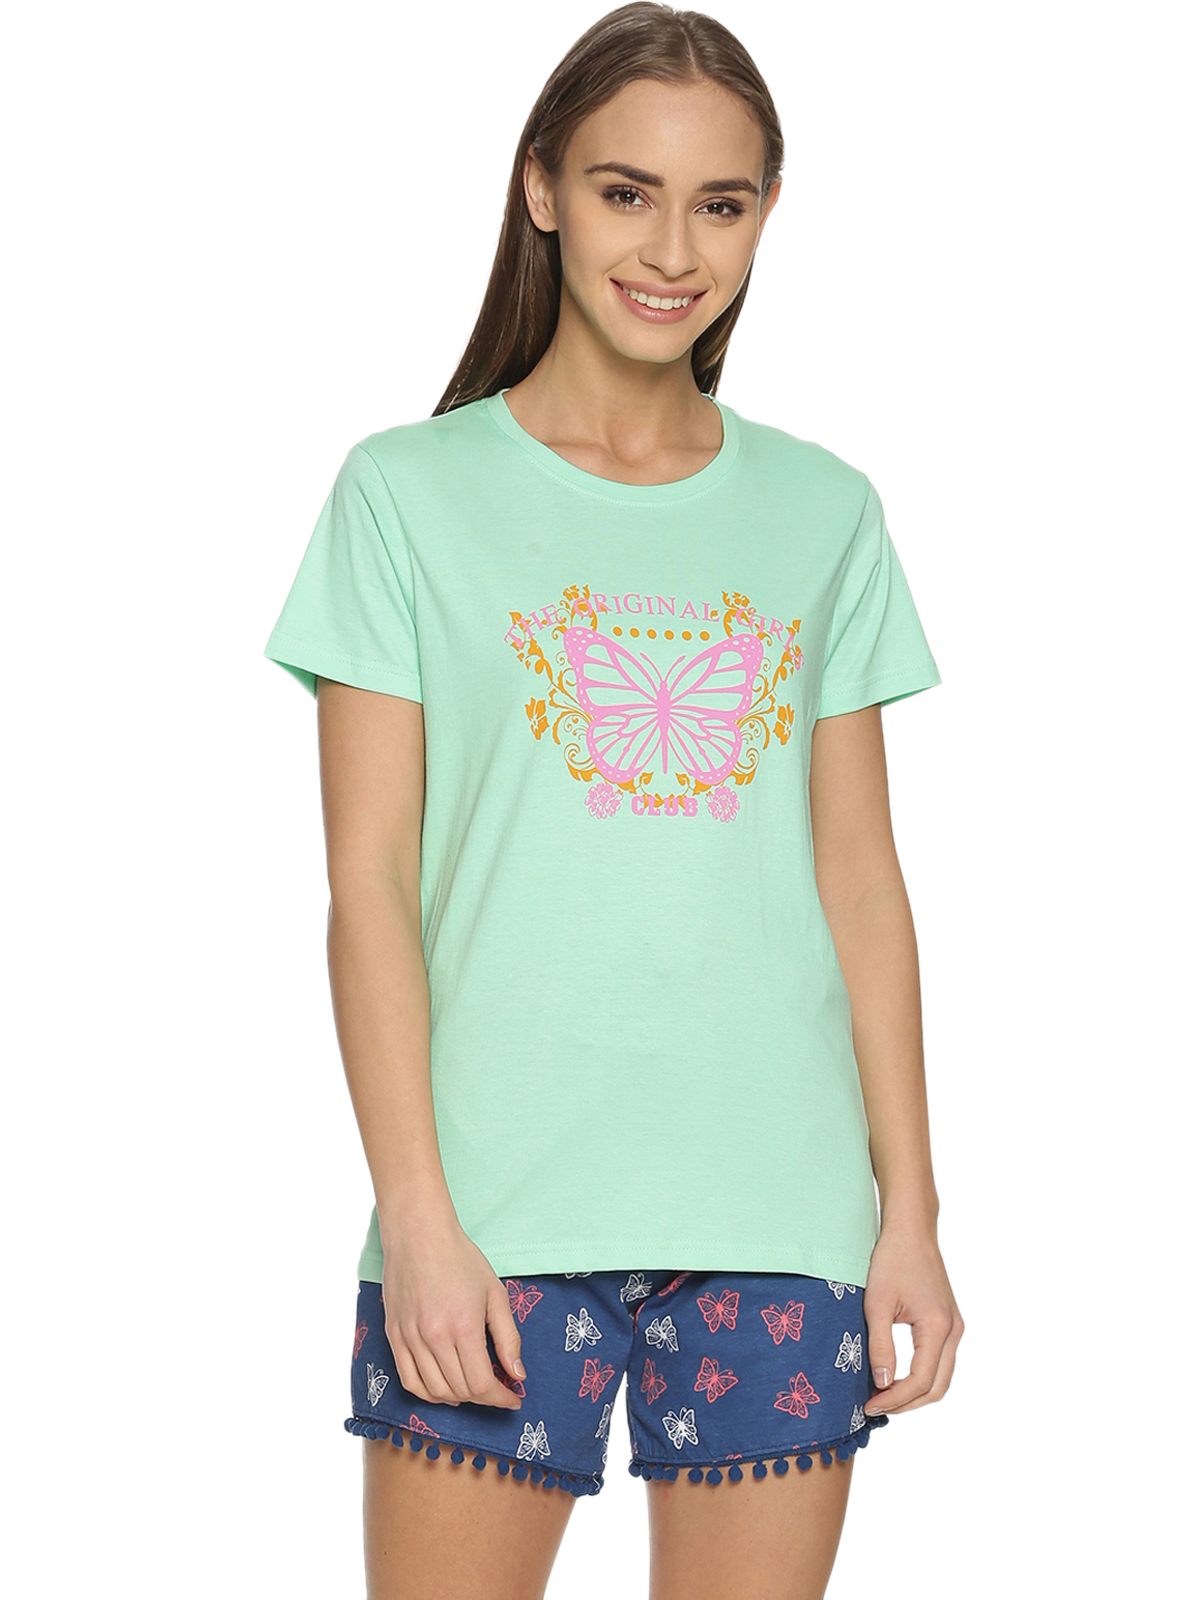 Kryptic | Kryptic Womens 100% cotton printed nightsuit with all over printed shorts and graphic printed Tshirt